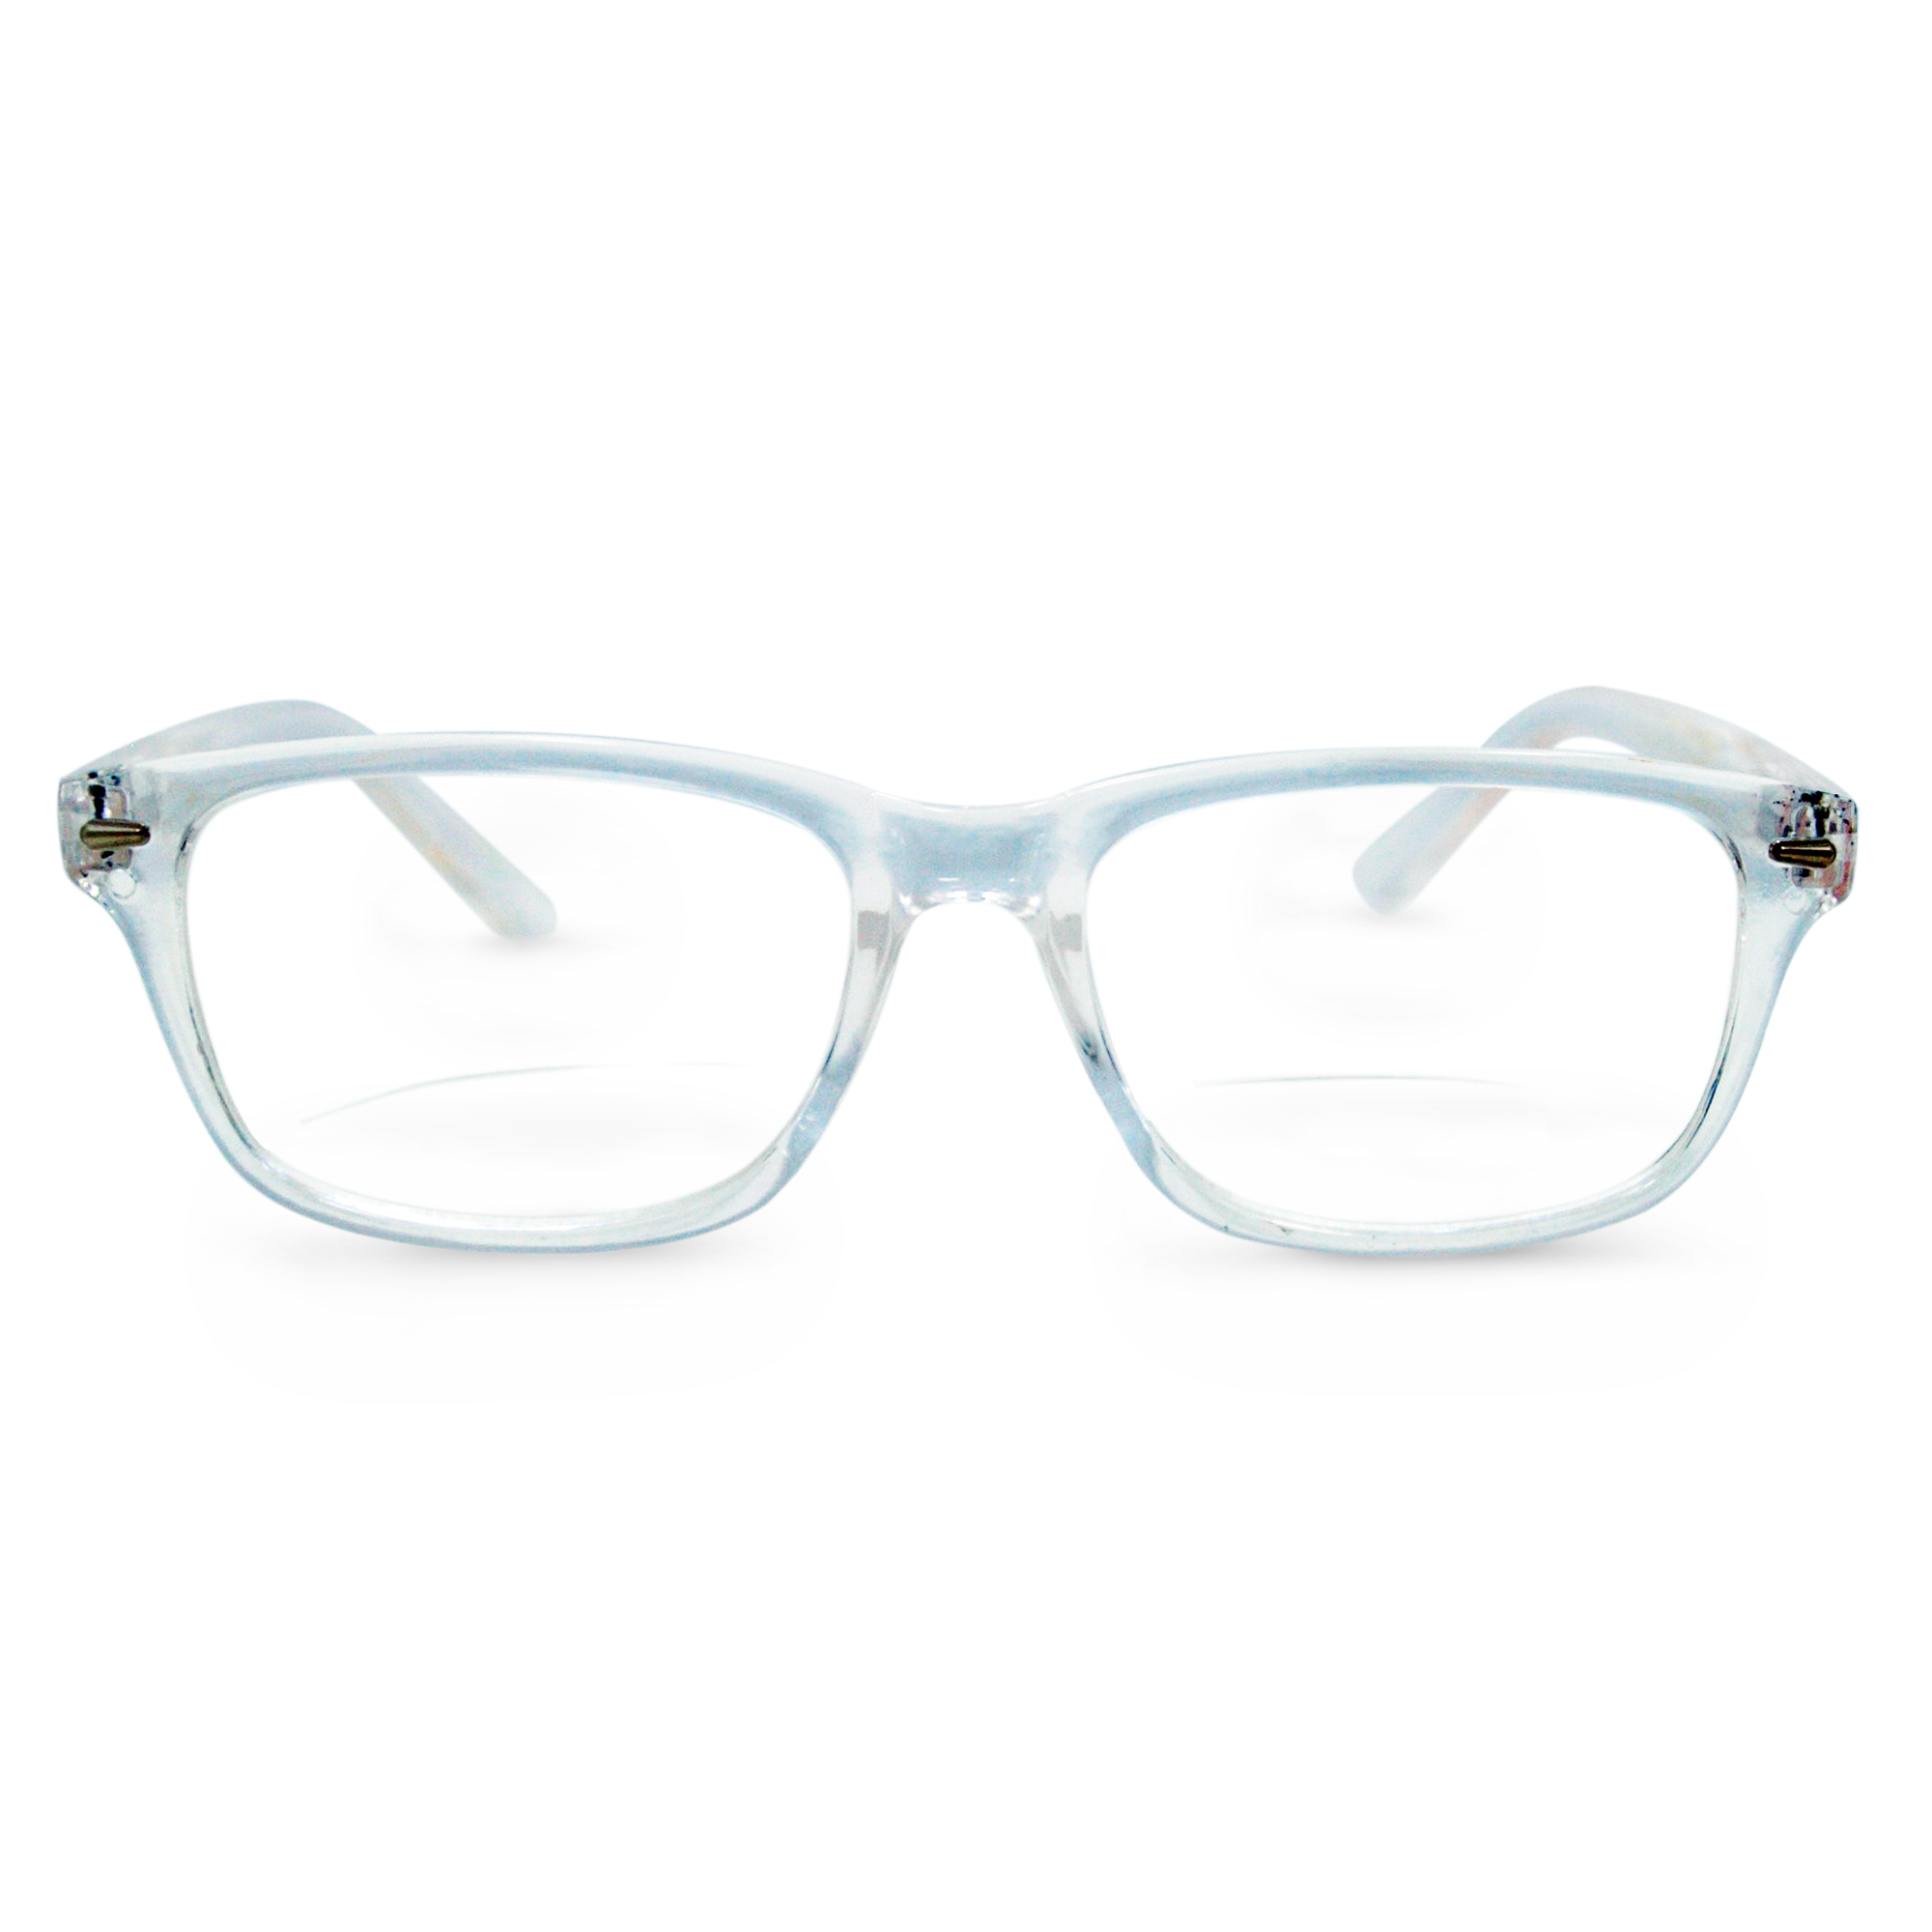 791457f1a16 In-Style-Eyes-Seymore-Retro-BiFocal-Reading-Glasses thumbnail